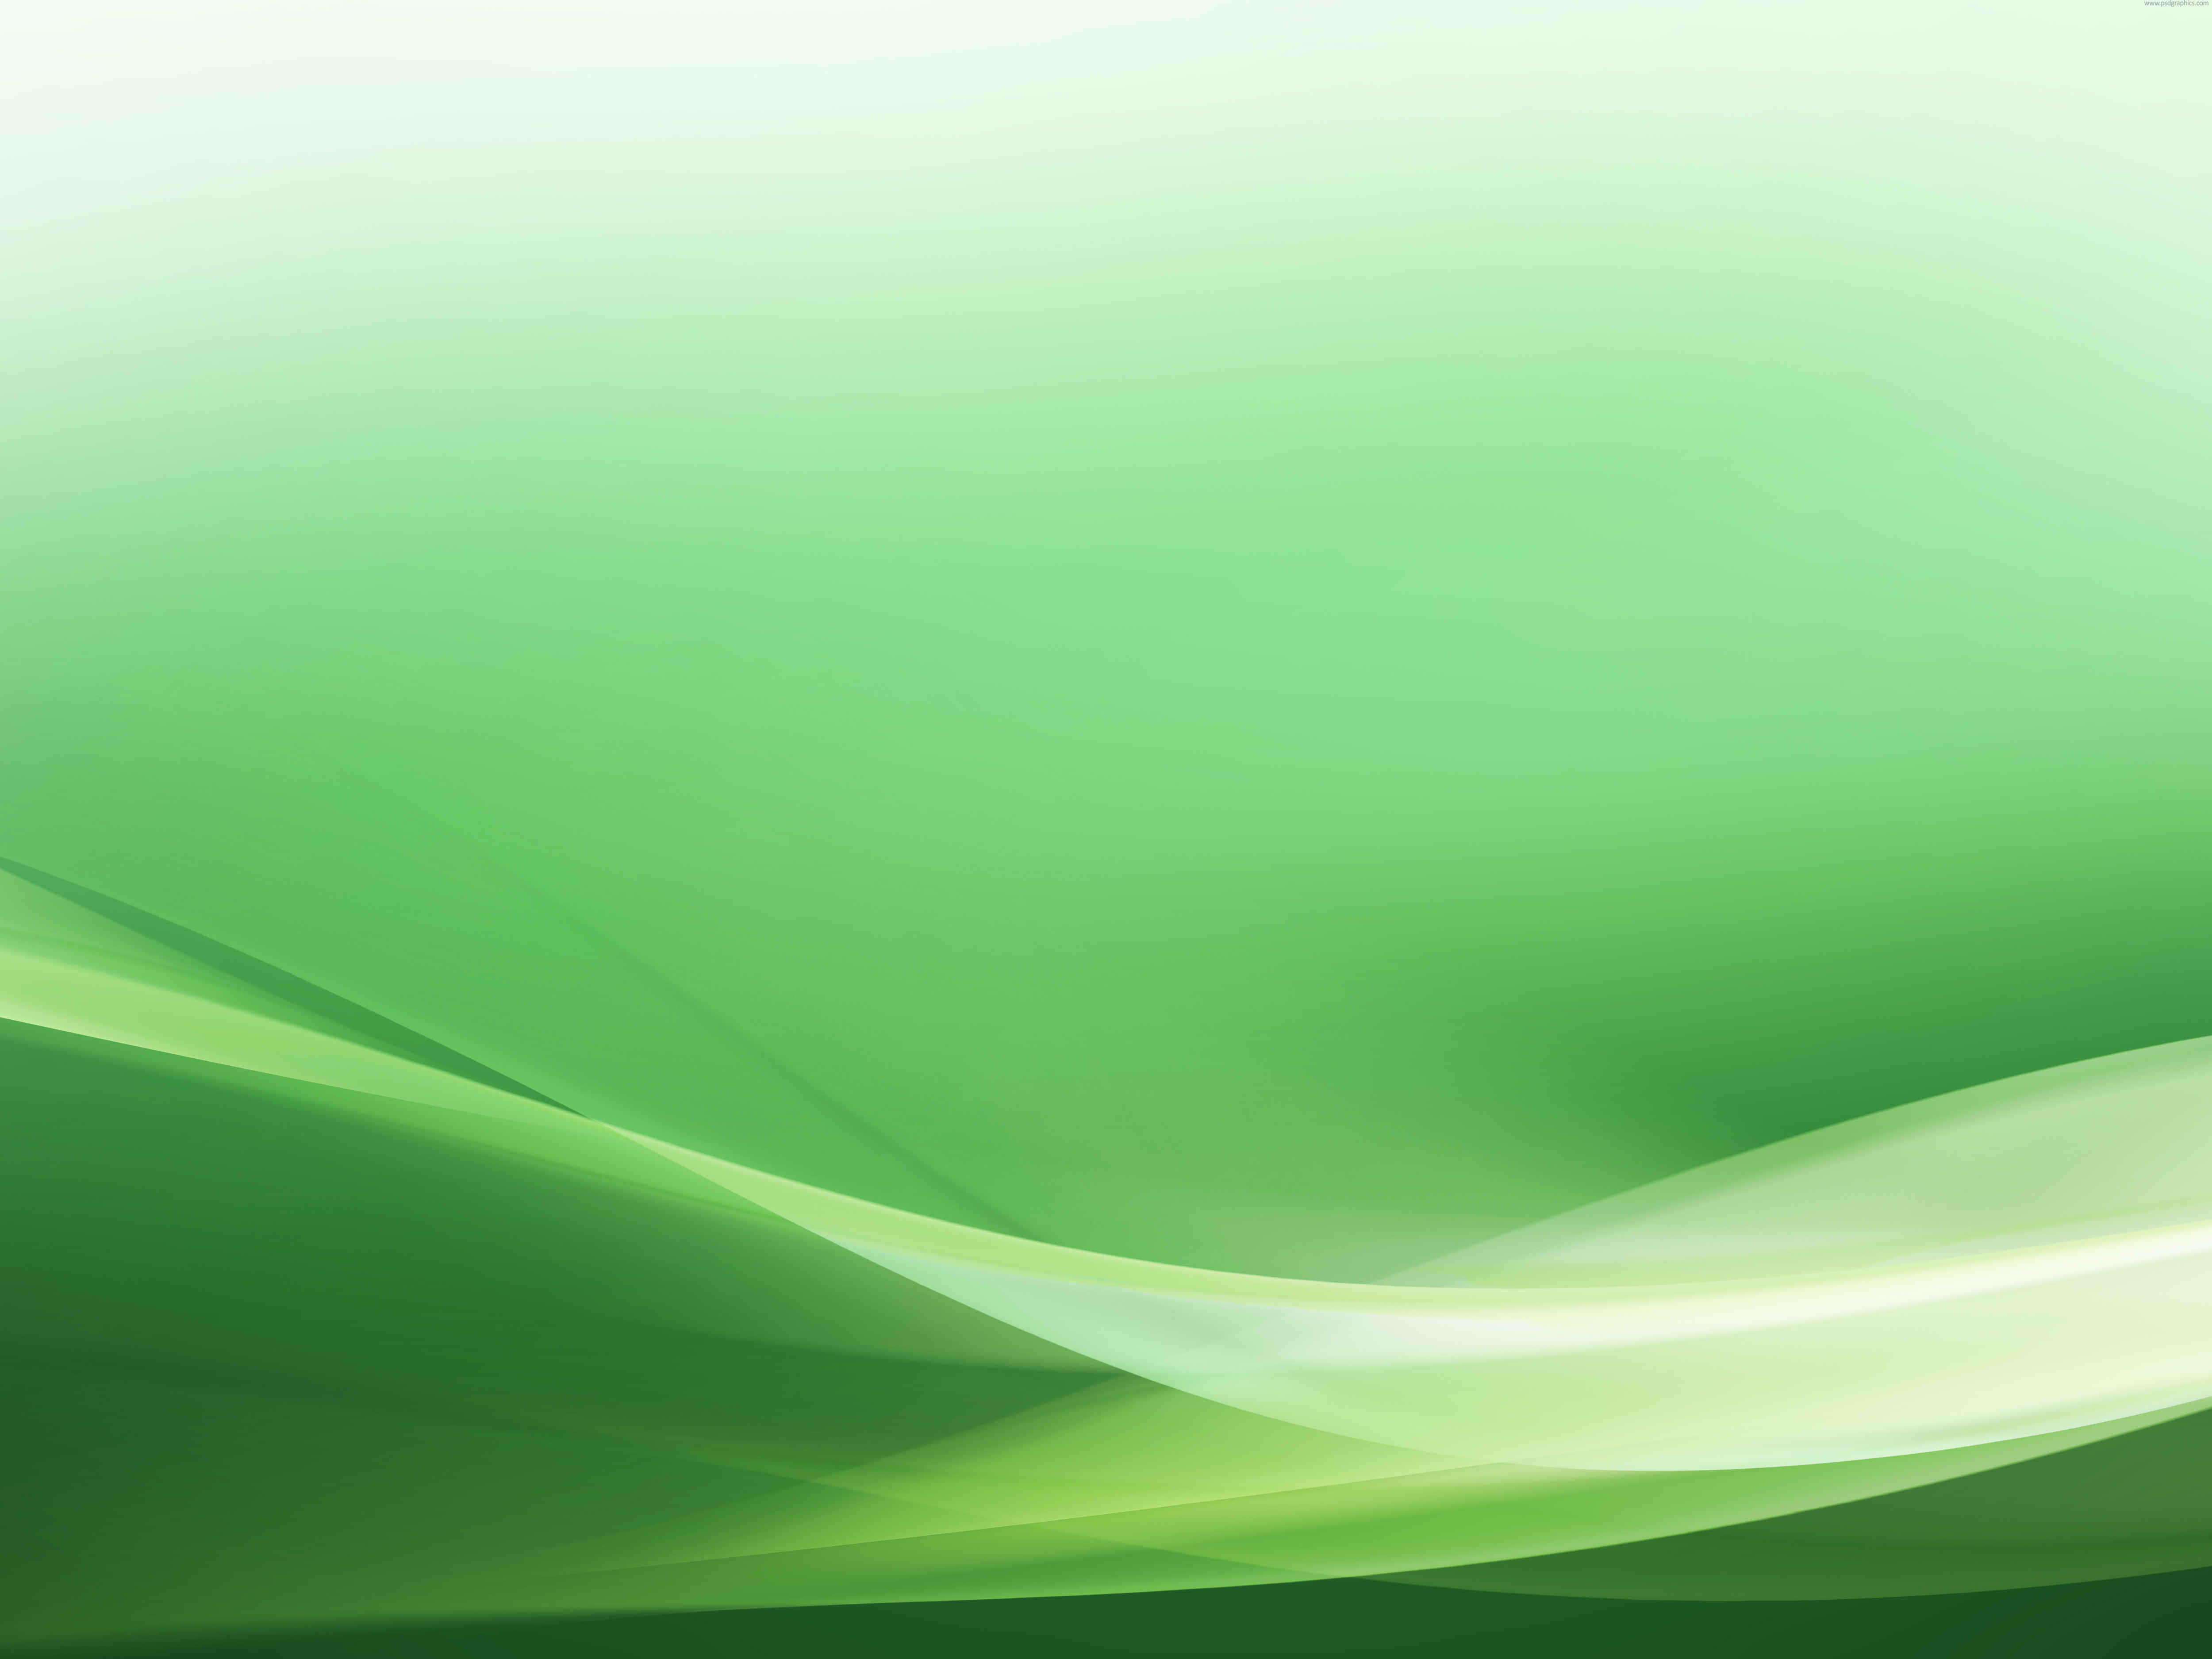 67 Green Background Images On Wallpapersafari